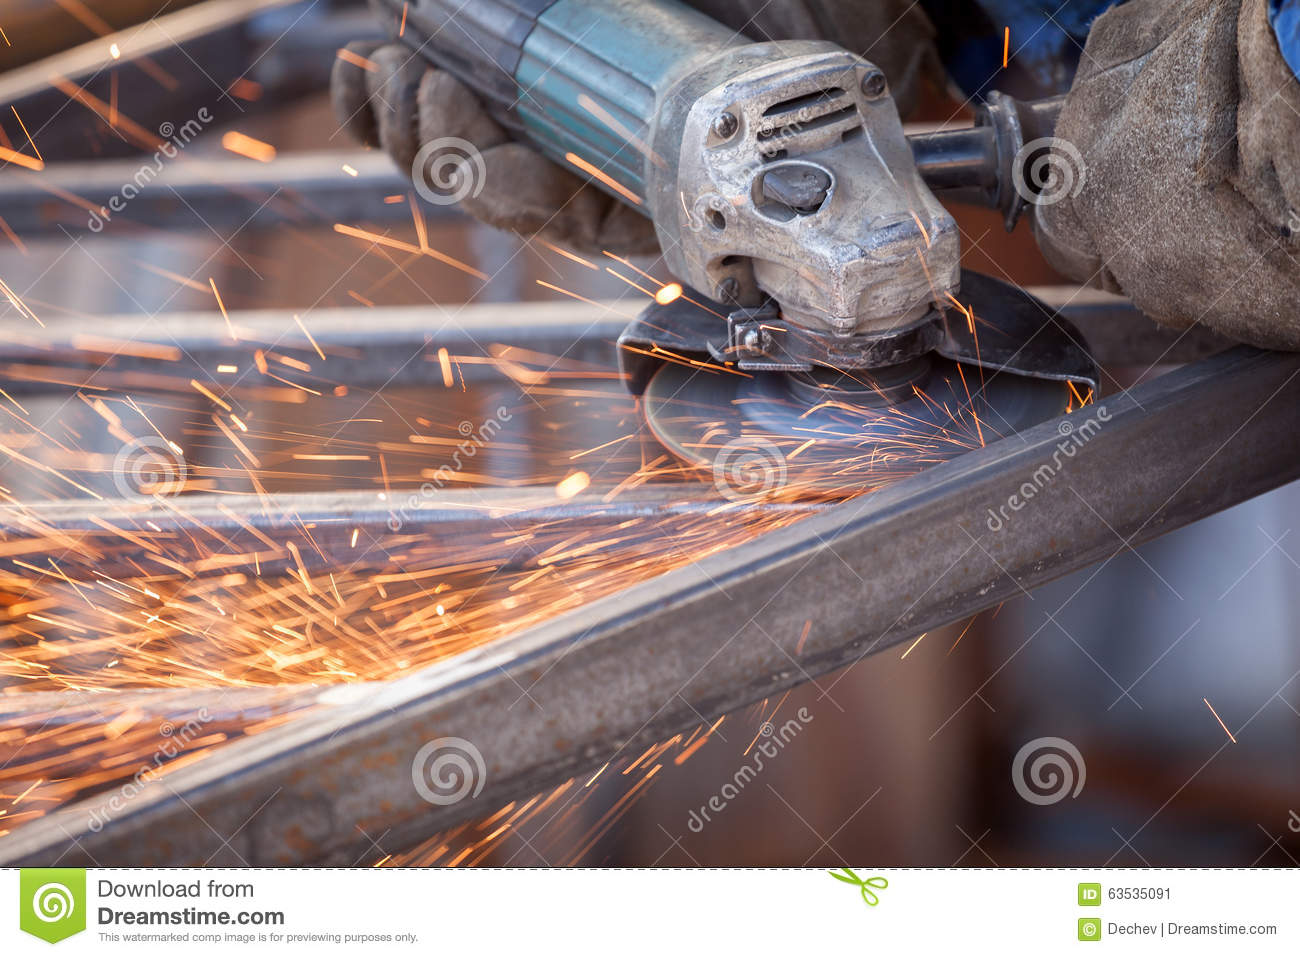 Worker using electric grinder machine cutting metal. Sparkles